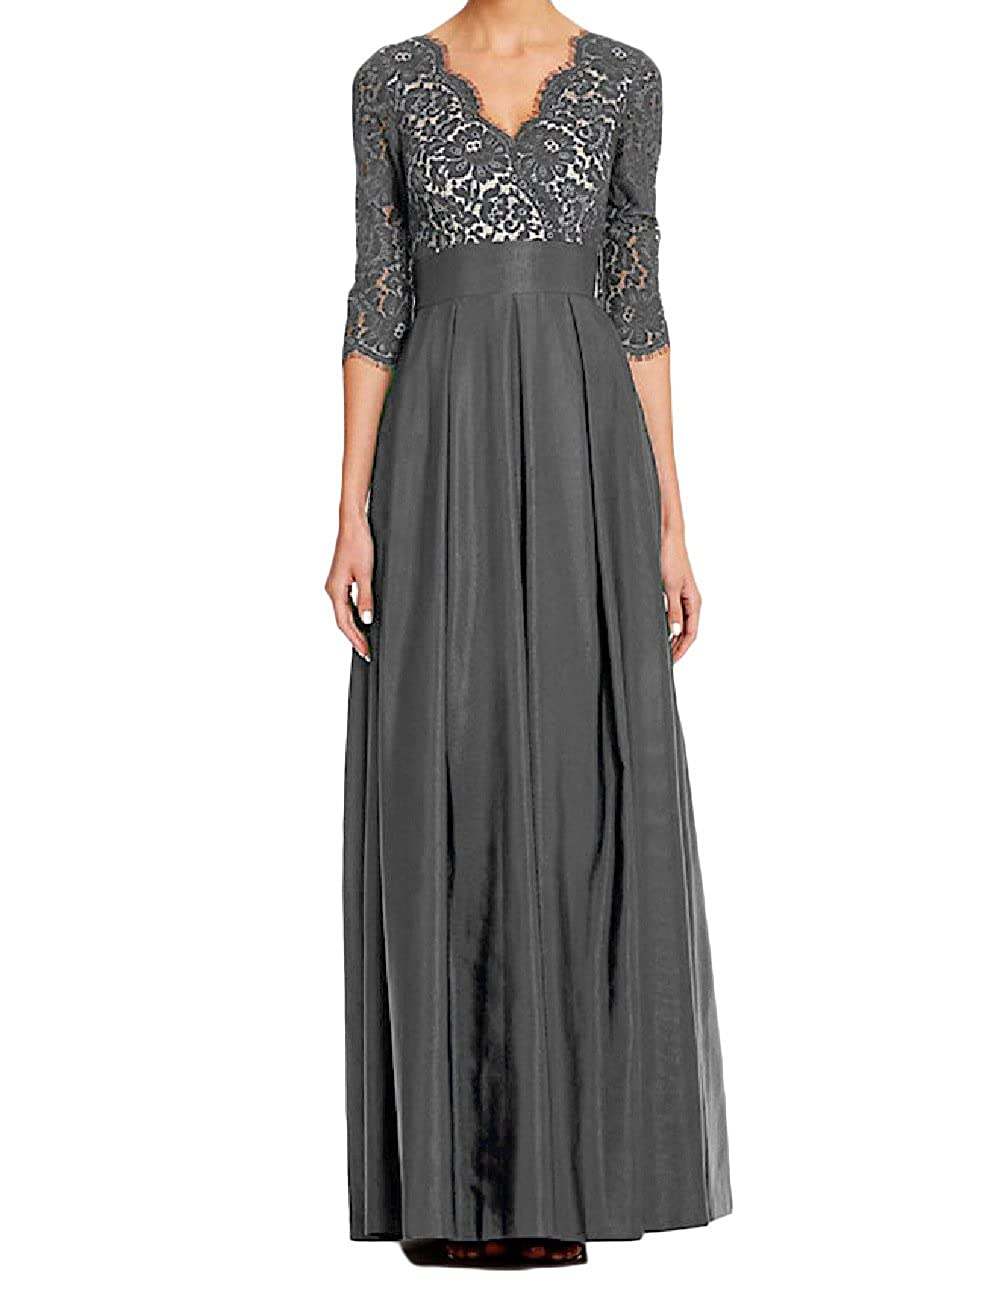 OYISHA Womens 1//2 Sleeves Empire Mother of The Bride Dress Lace Formal Gown OY60MD